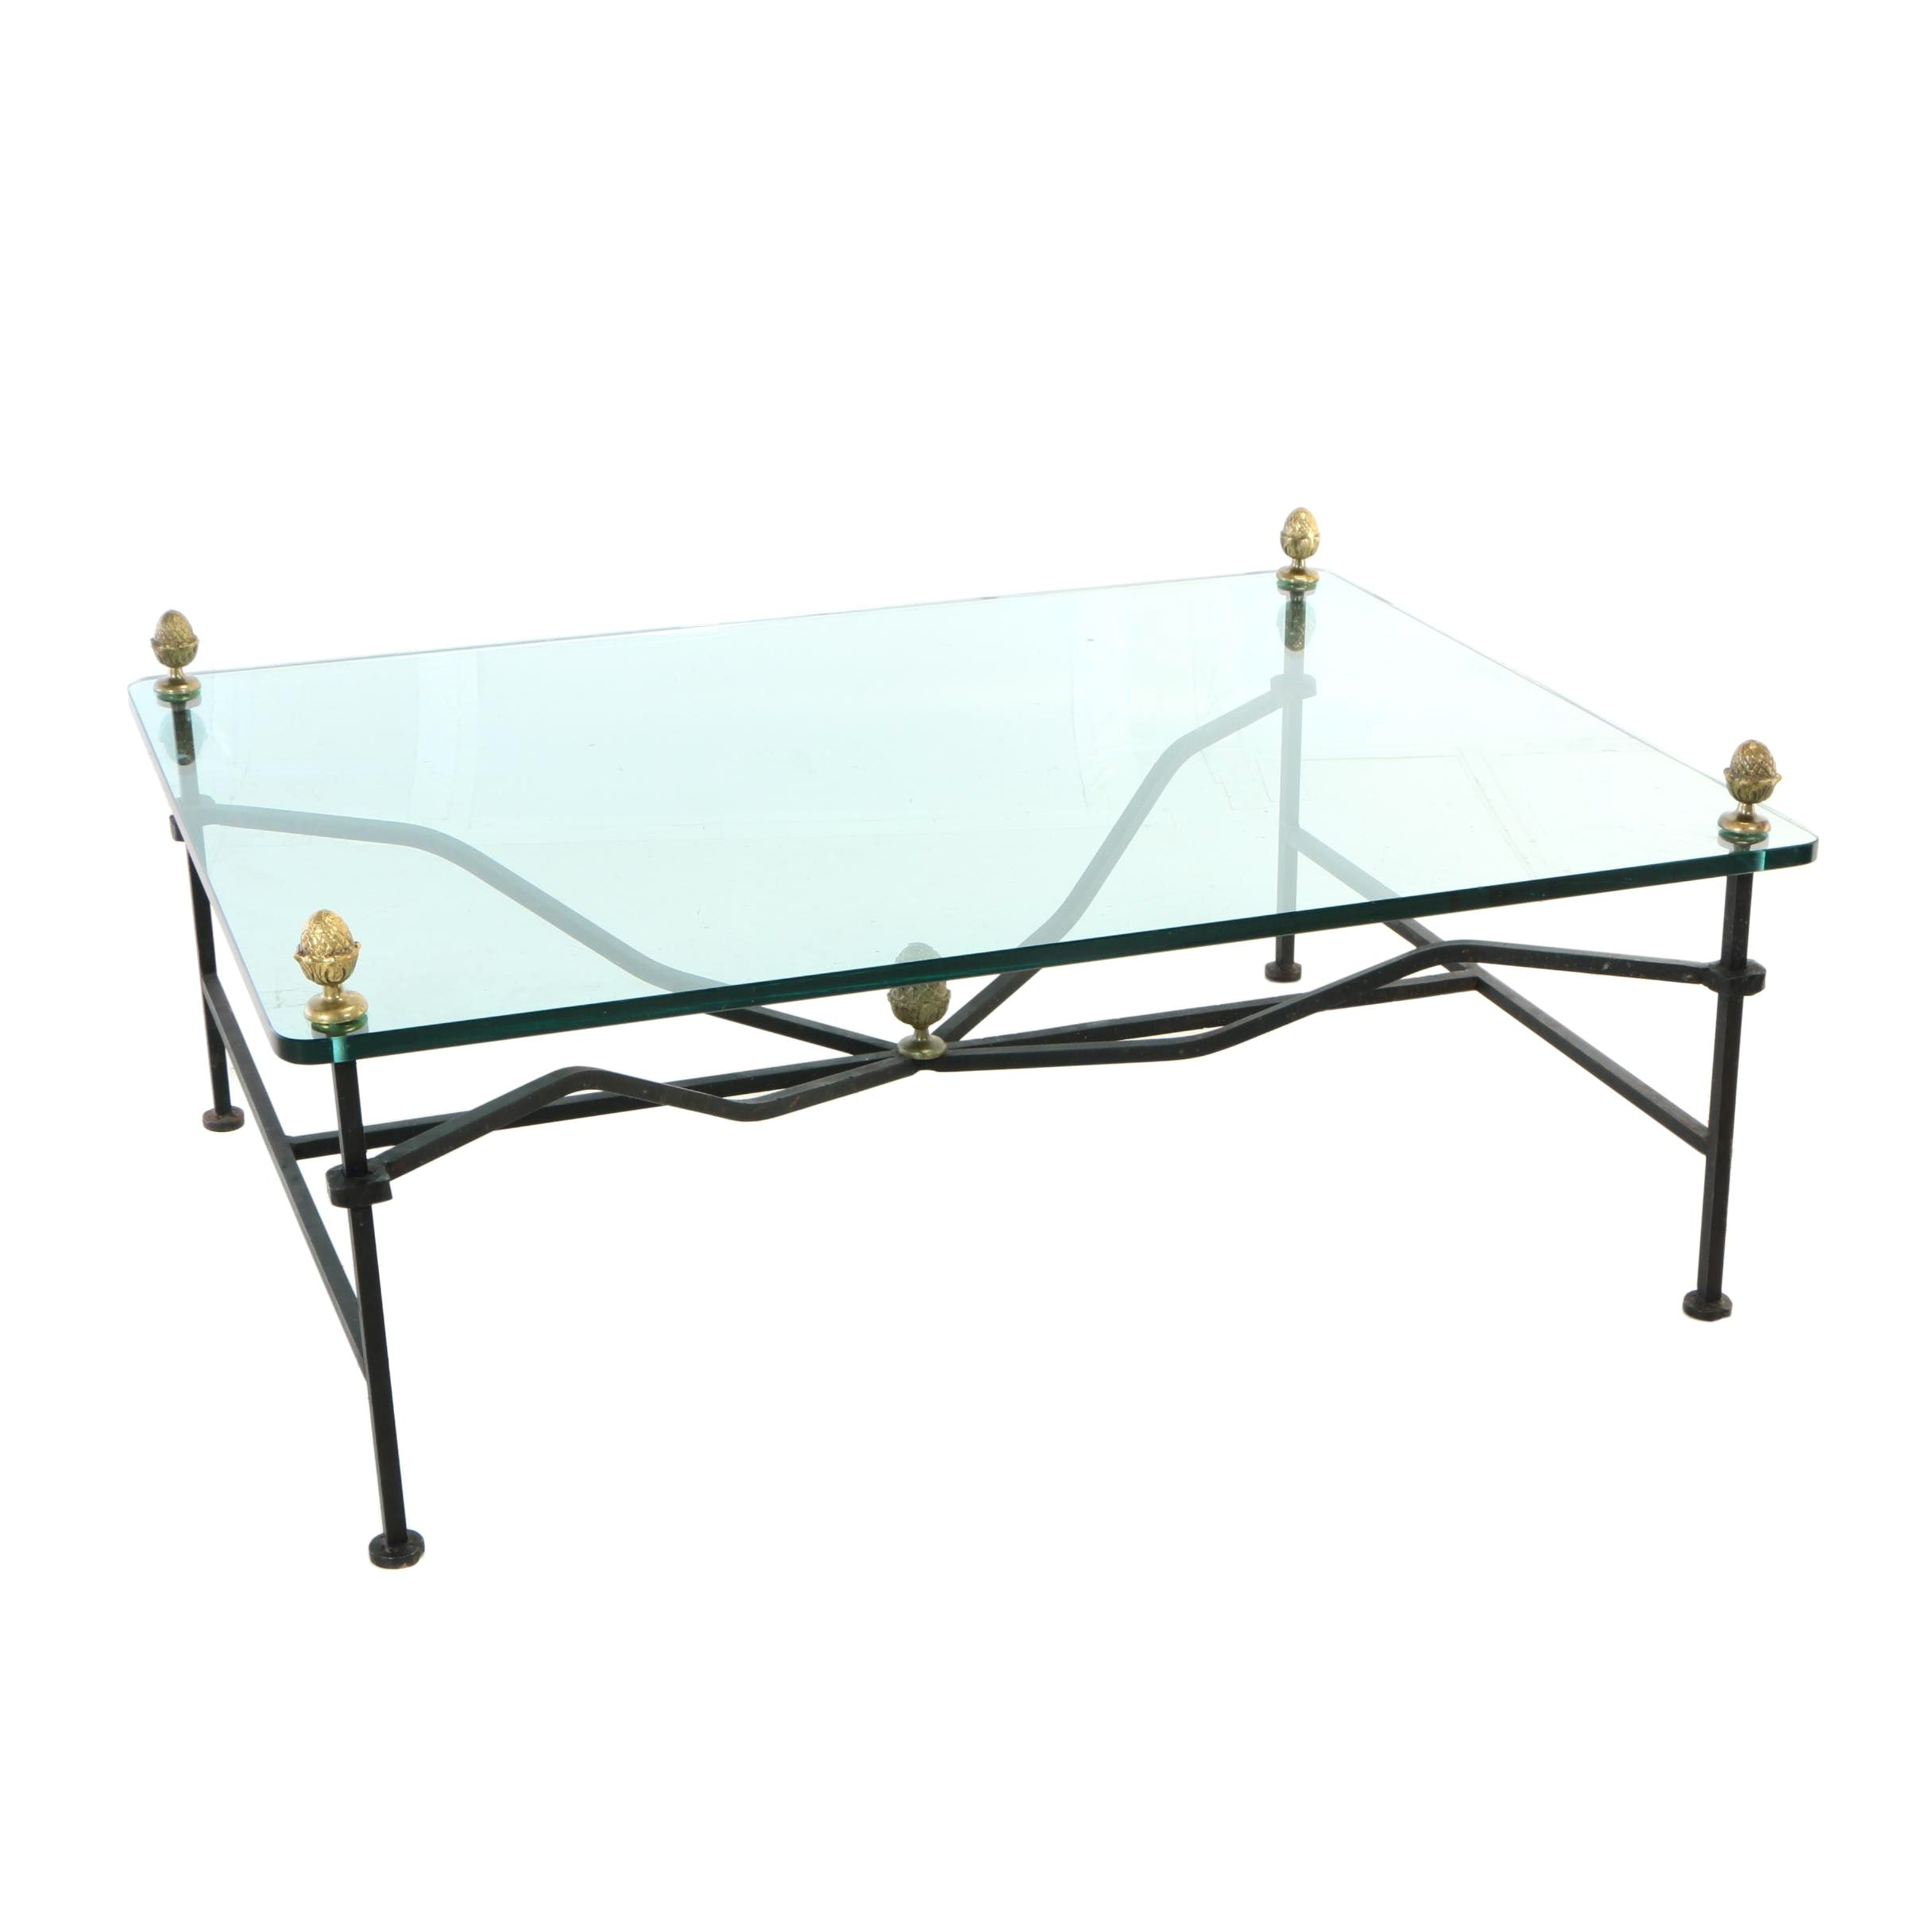 Brass-Mounted Iron and Glass-Topped Coffee Table, 20th Century